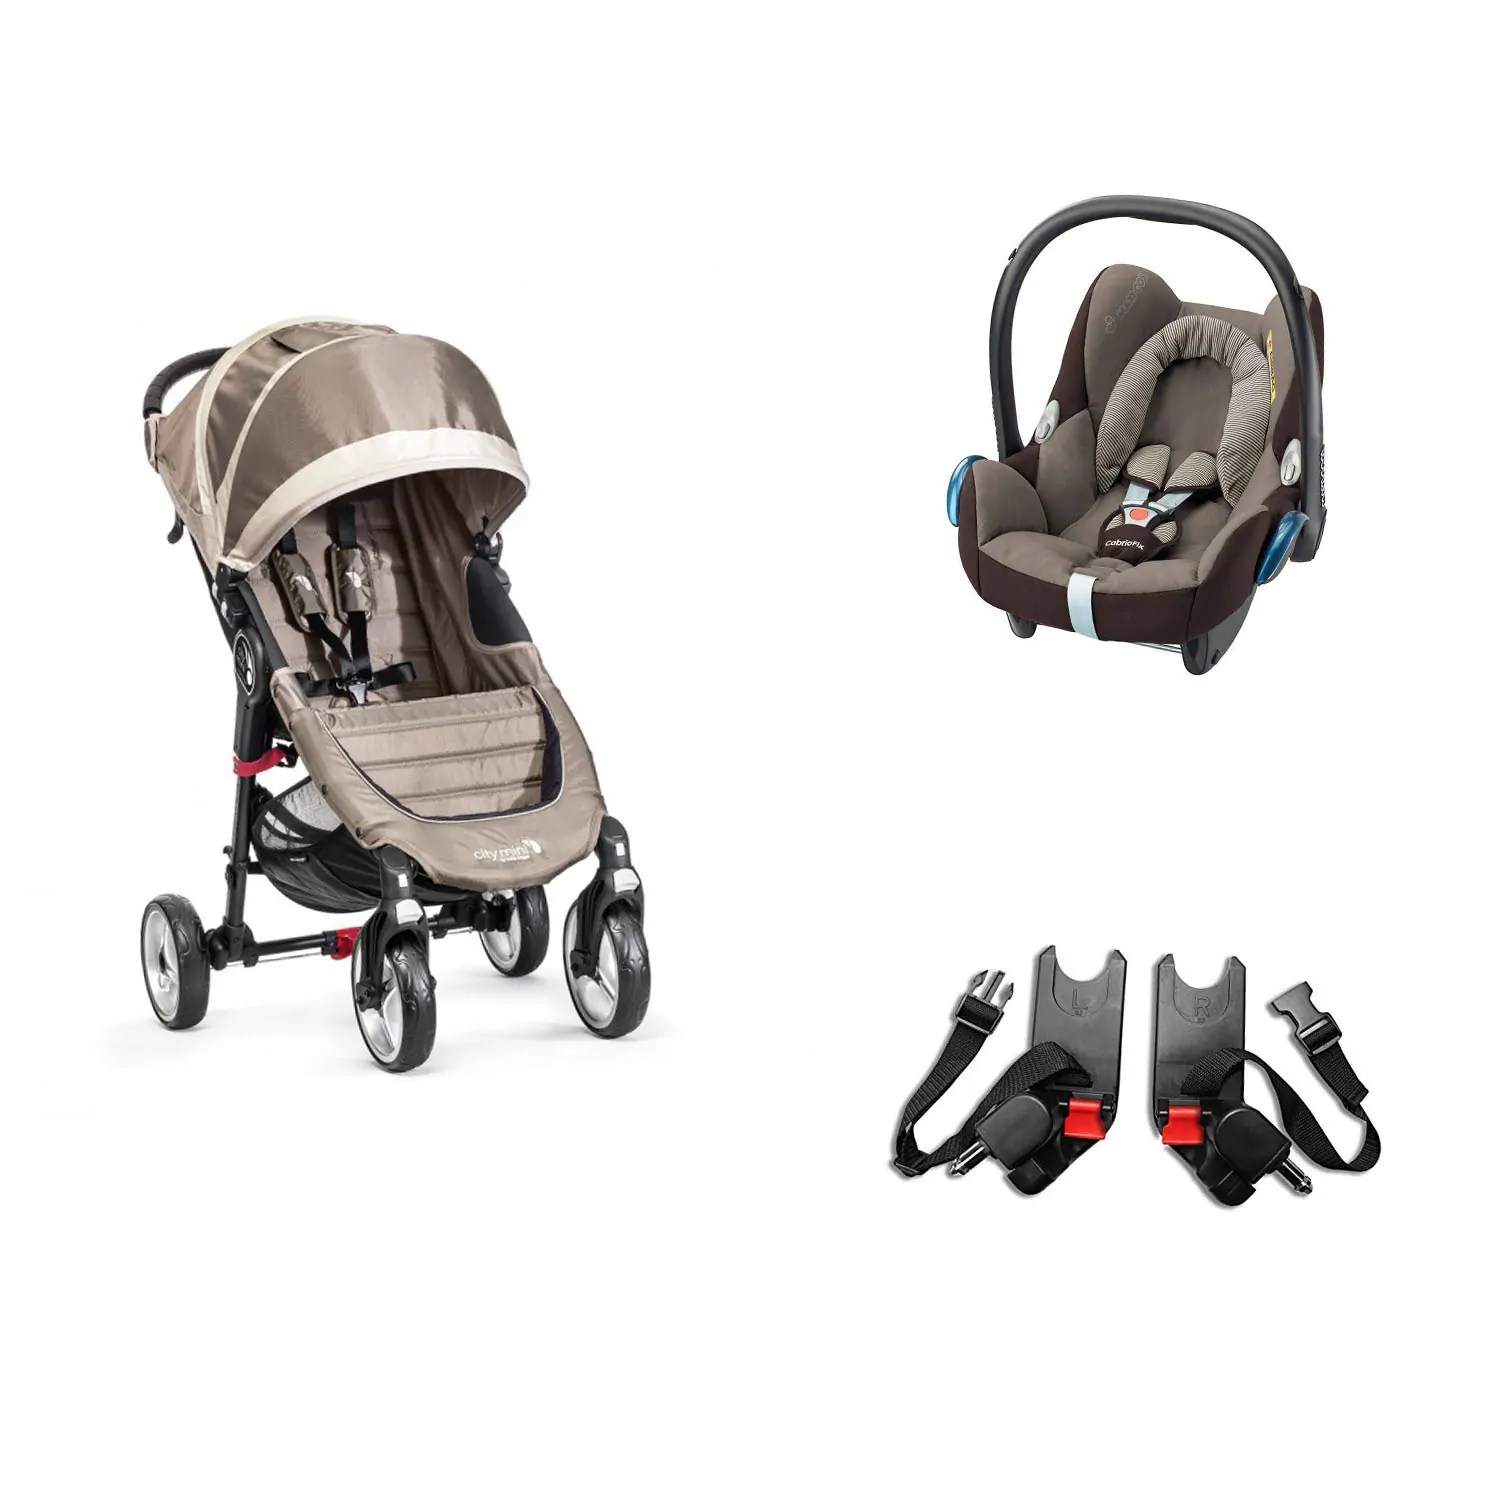 Car Seat Carrier Stroller Stroller And Baby Carrier Package